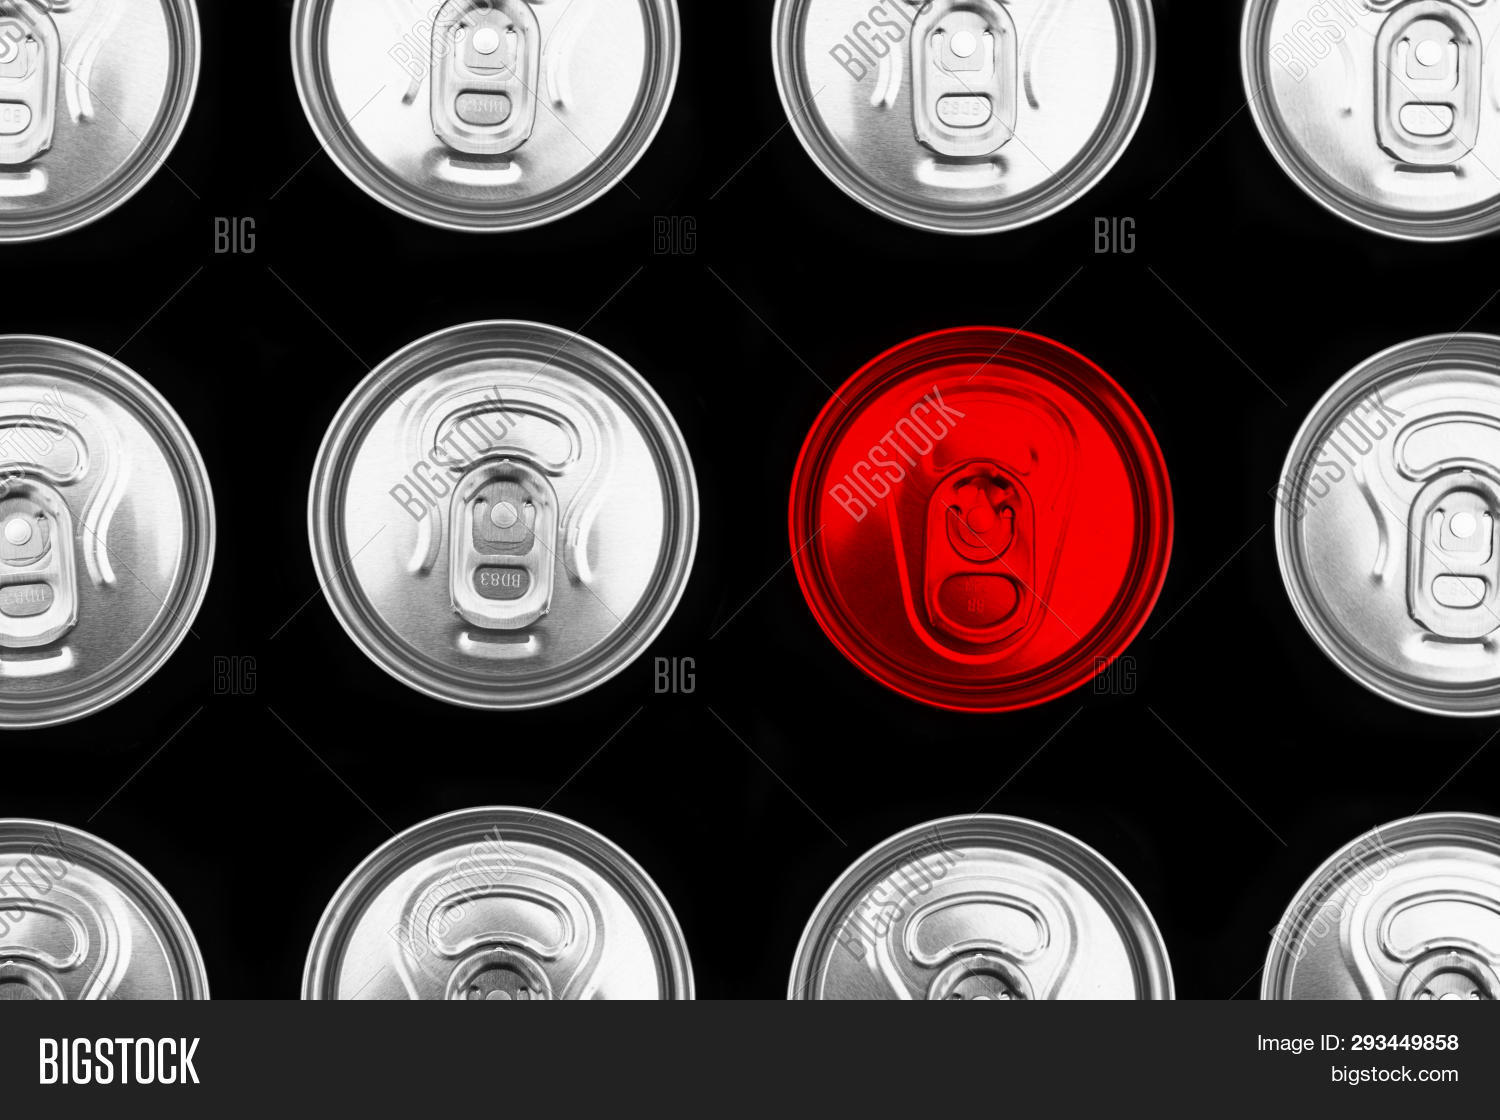 alcohol,alcoholic,aluminium,aluminum,beer,beverage,canister,canned,cans,carbonated,closed,cola,cold,container,cool,design,designed,drink,energy,food,freshness,group,juice,lager,lid,liquid,metal,metallic,pack,package,packaging,packing,pattern,pull,recycle,recycling,refreshment,soda,soft,tab,taste,tin,top,water